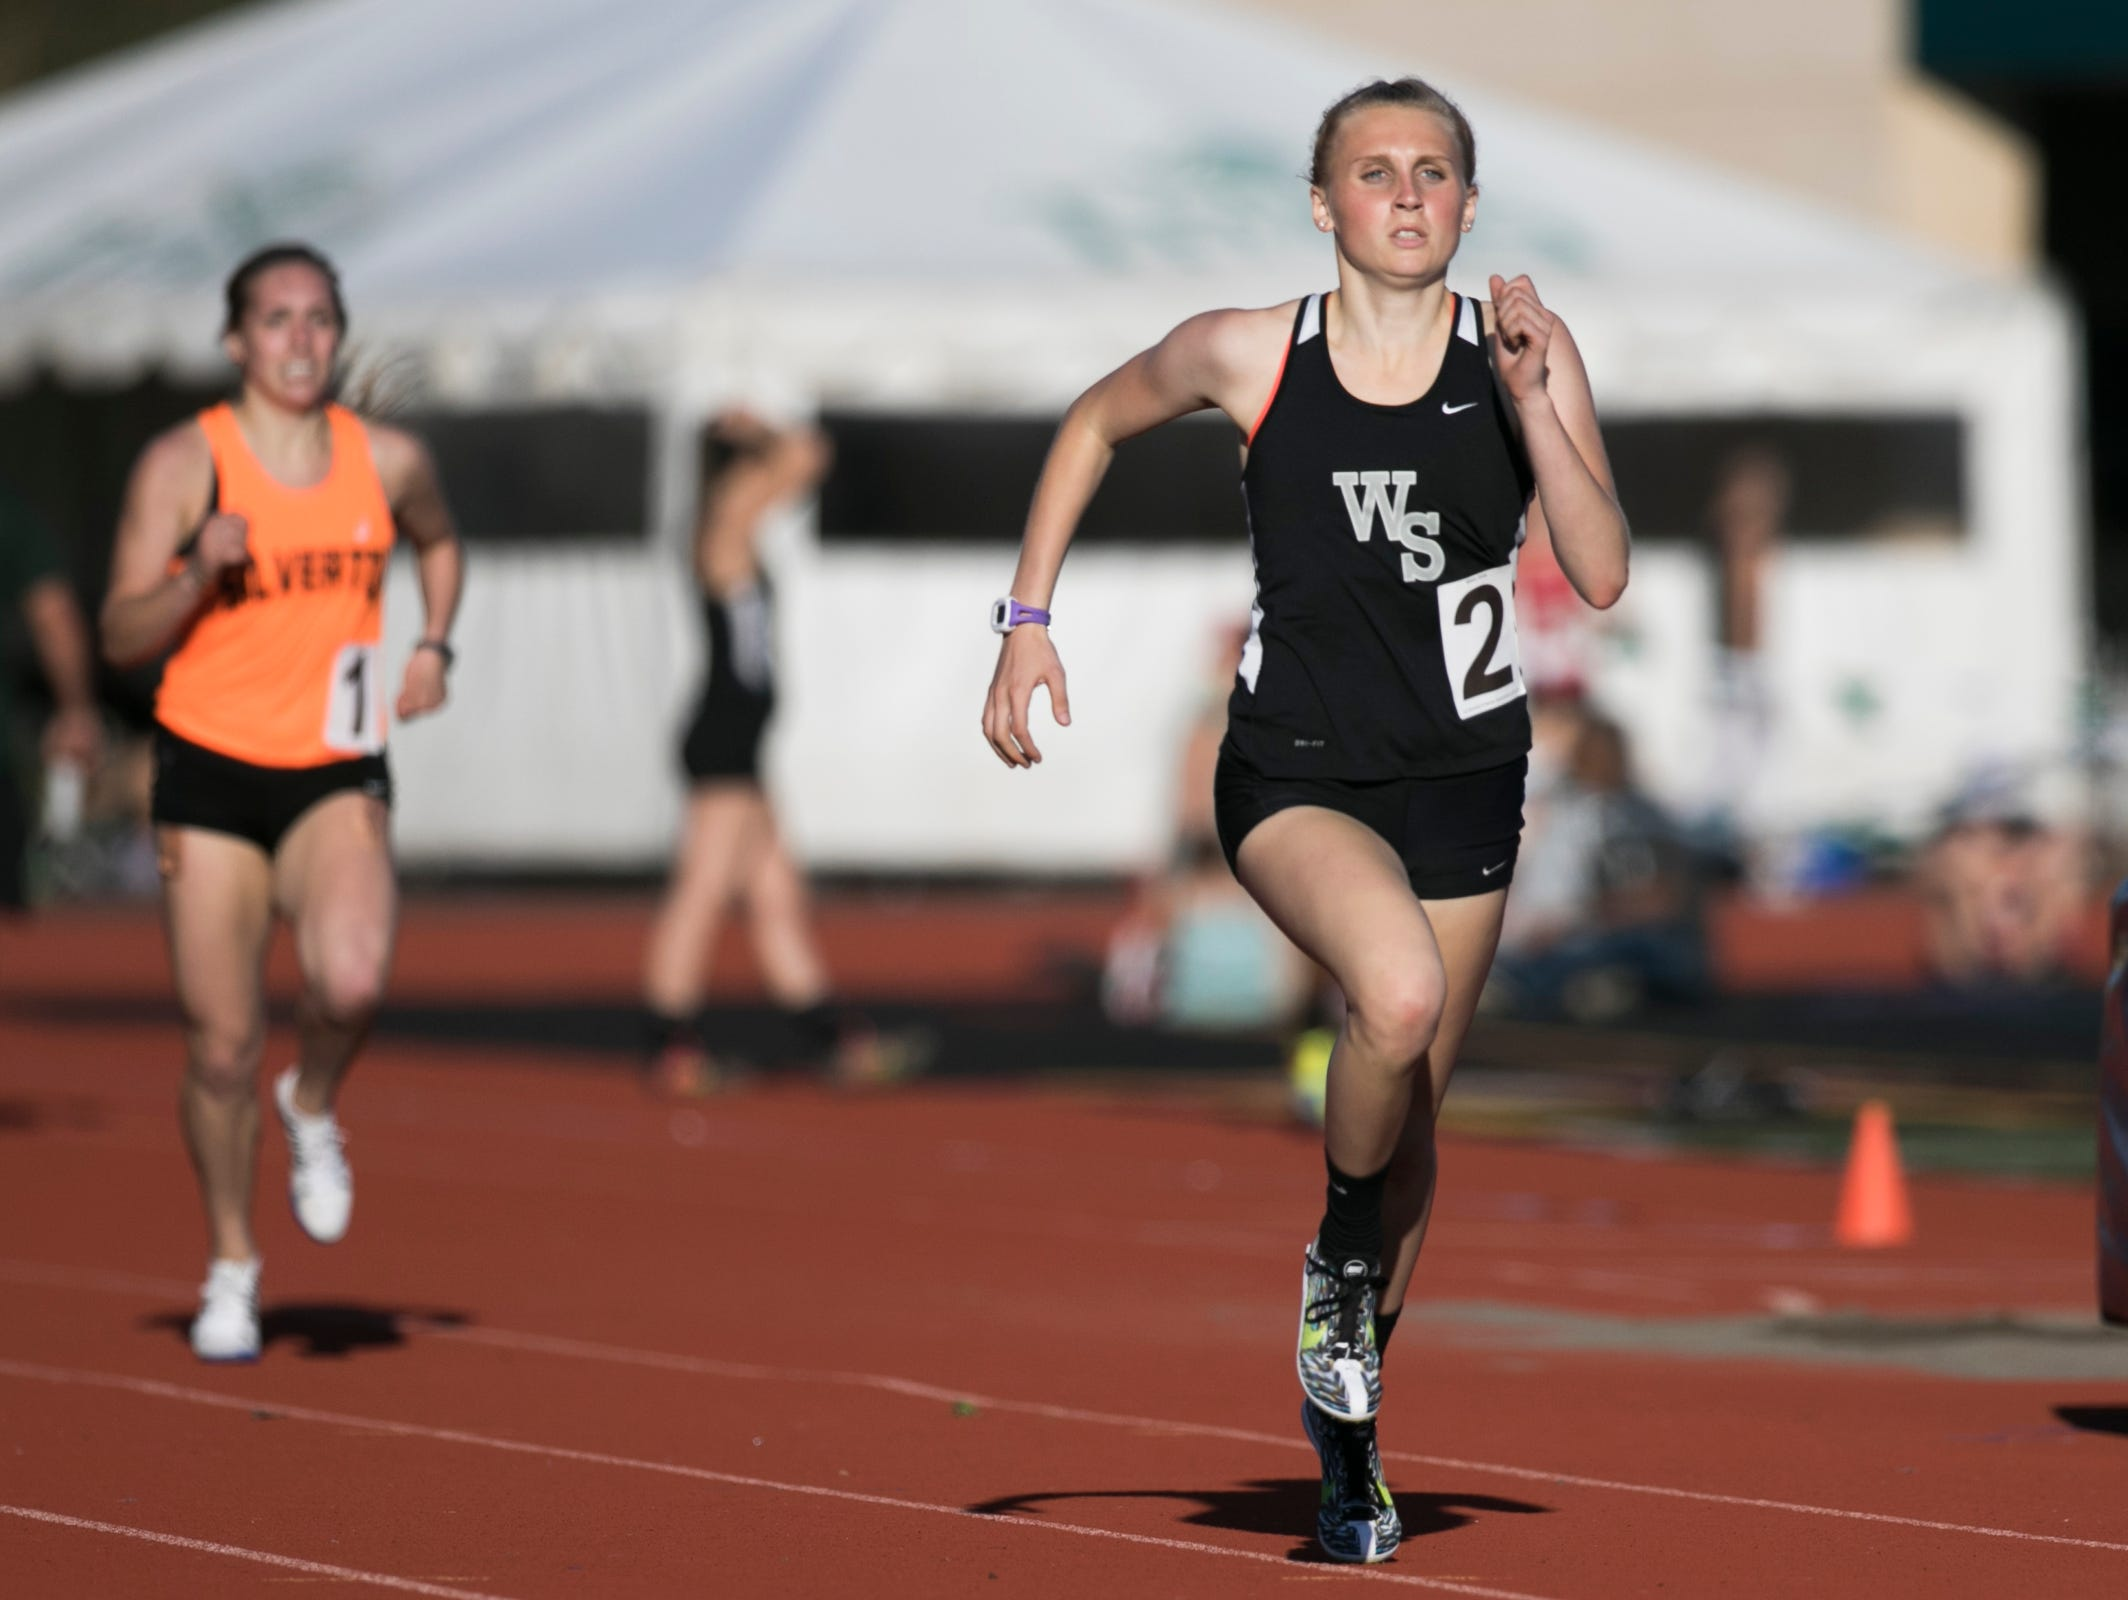 West Salem's Brook Chuhlantsheff pulls away from competitors to win the girls 800 meter race at the Titan Track Classic at West Salem High School on Friday, April 1, 2016.